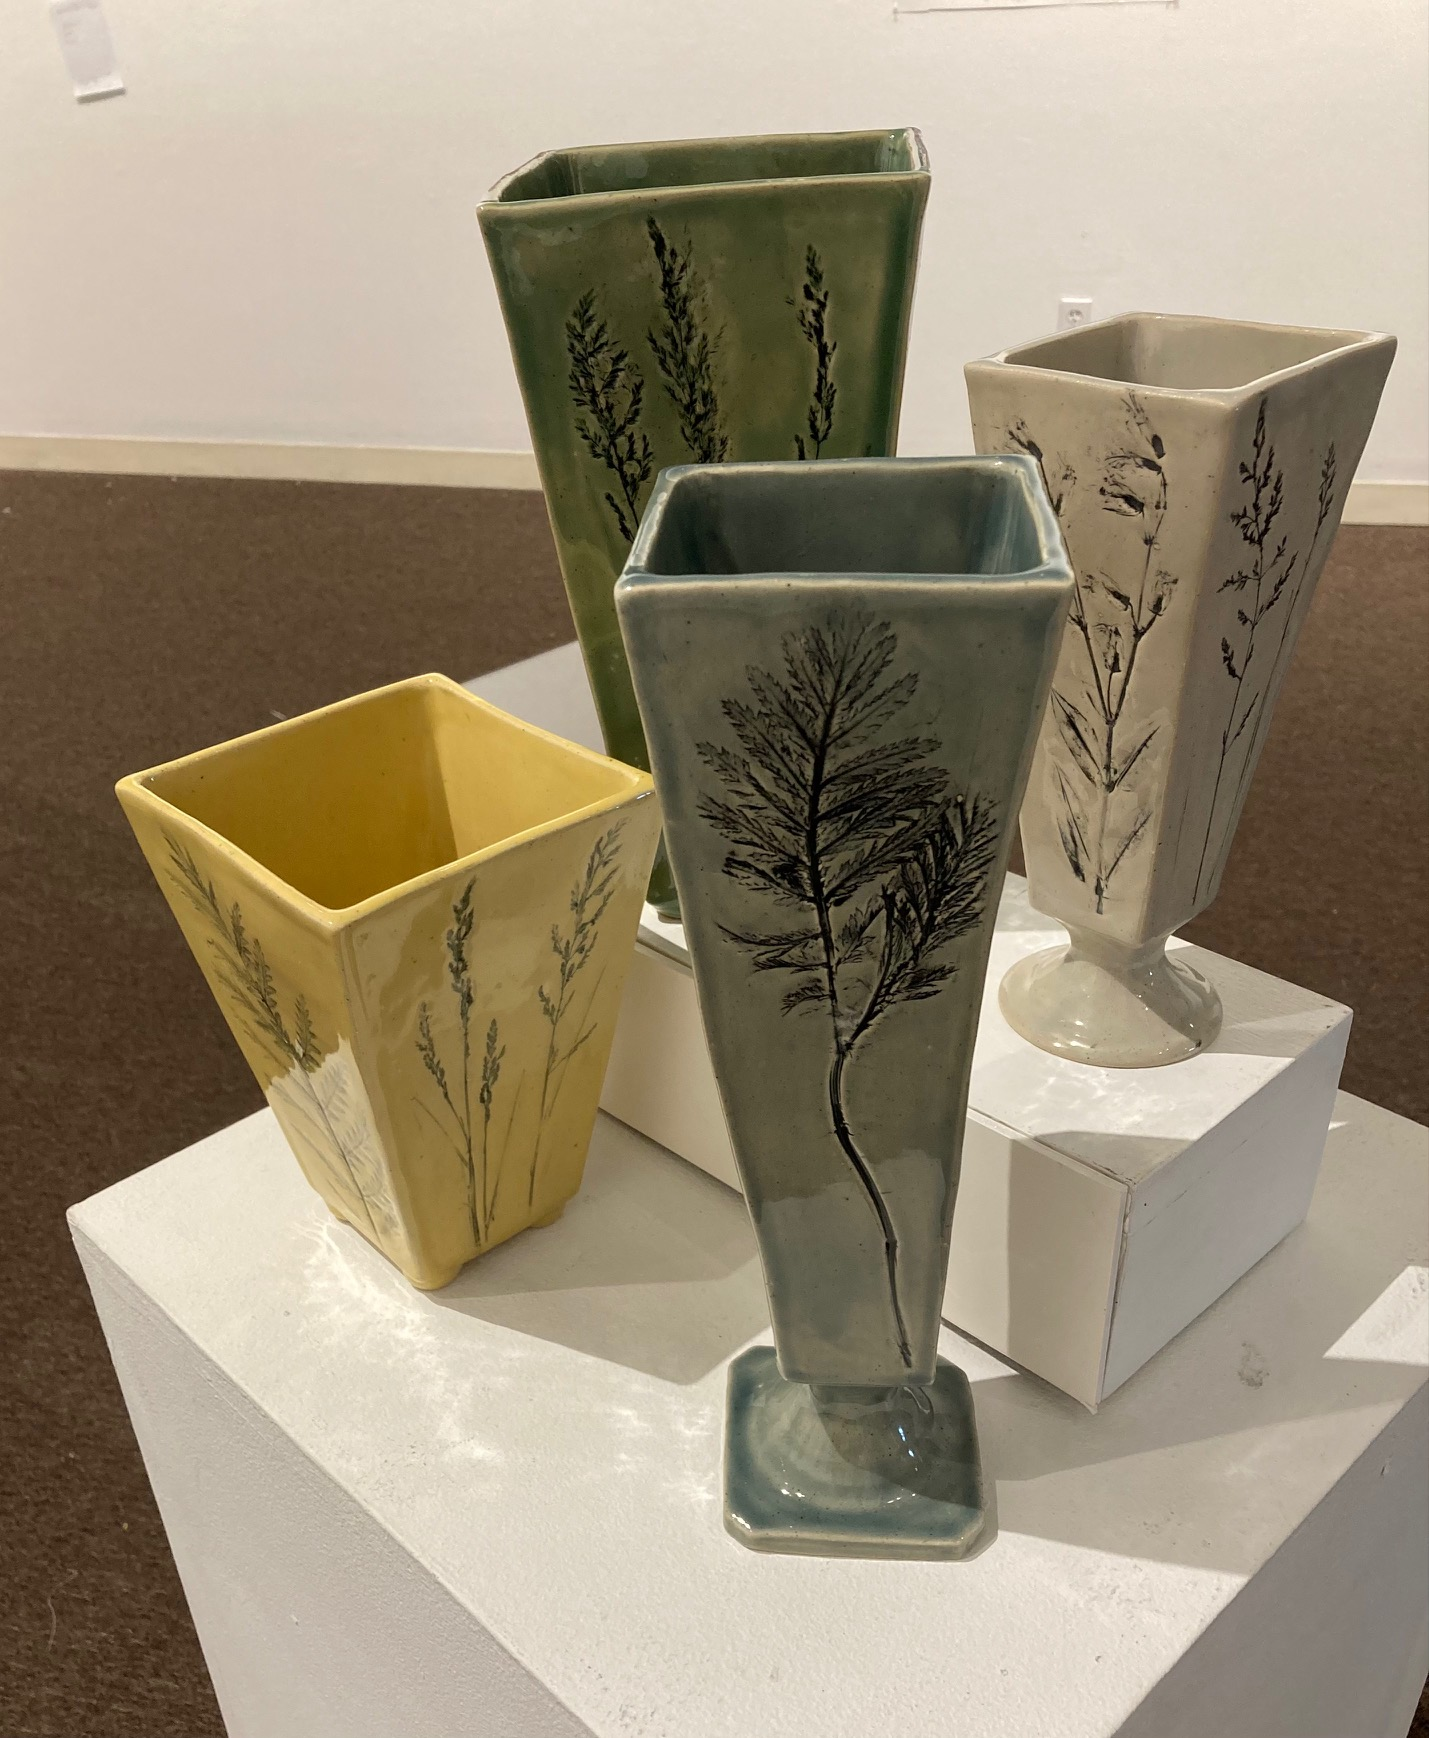 Daniela DesLauriers       Brickbottom Meadows  -  Impressions of the Flora that Surrounds Us  -  4 vases. stoneware  -  $110.00 each